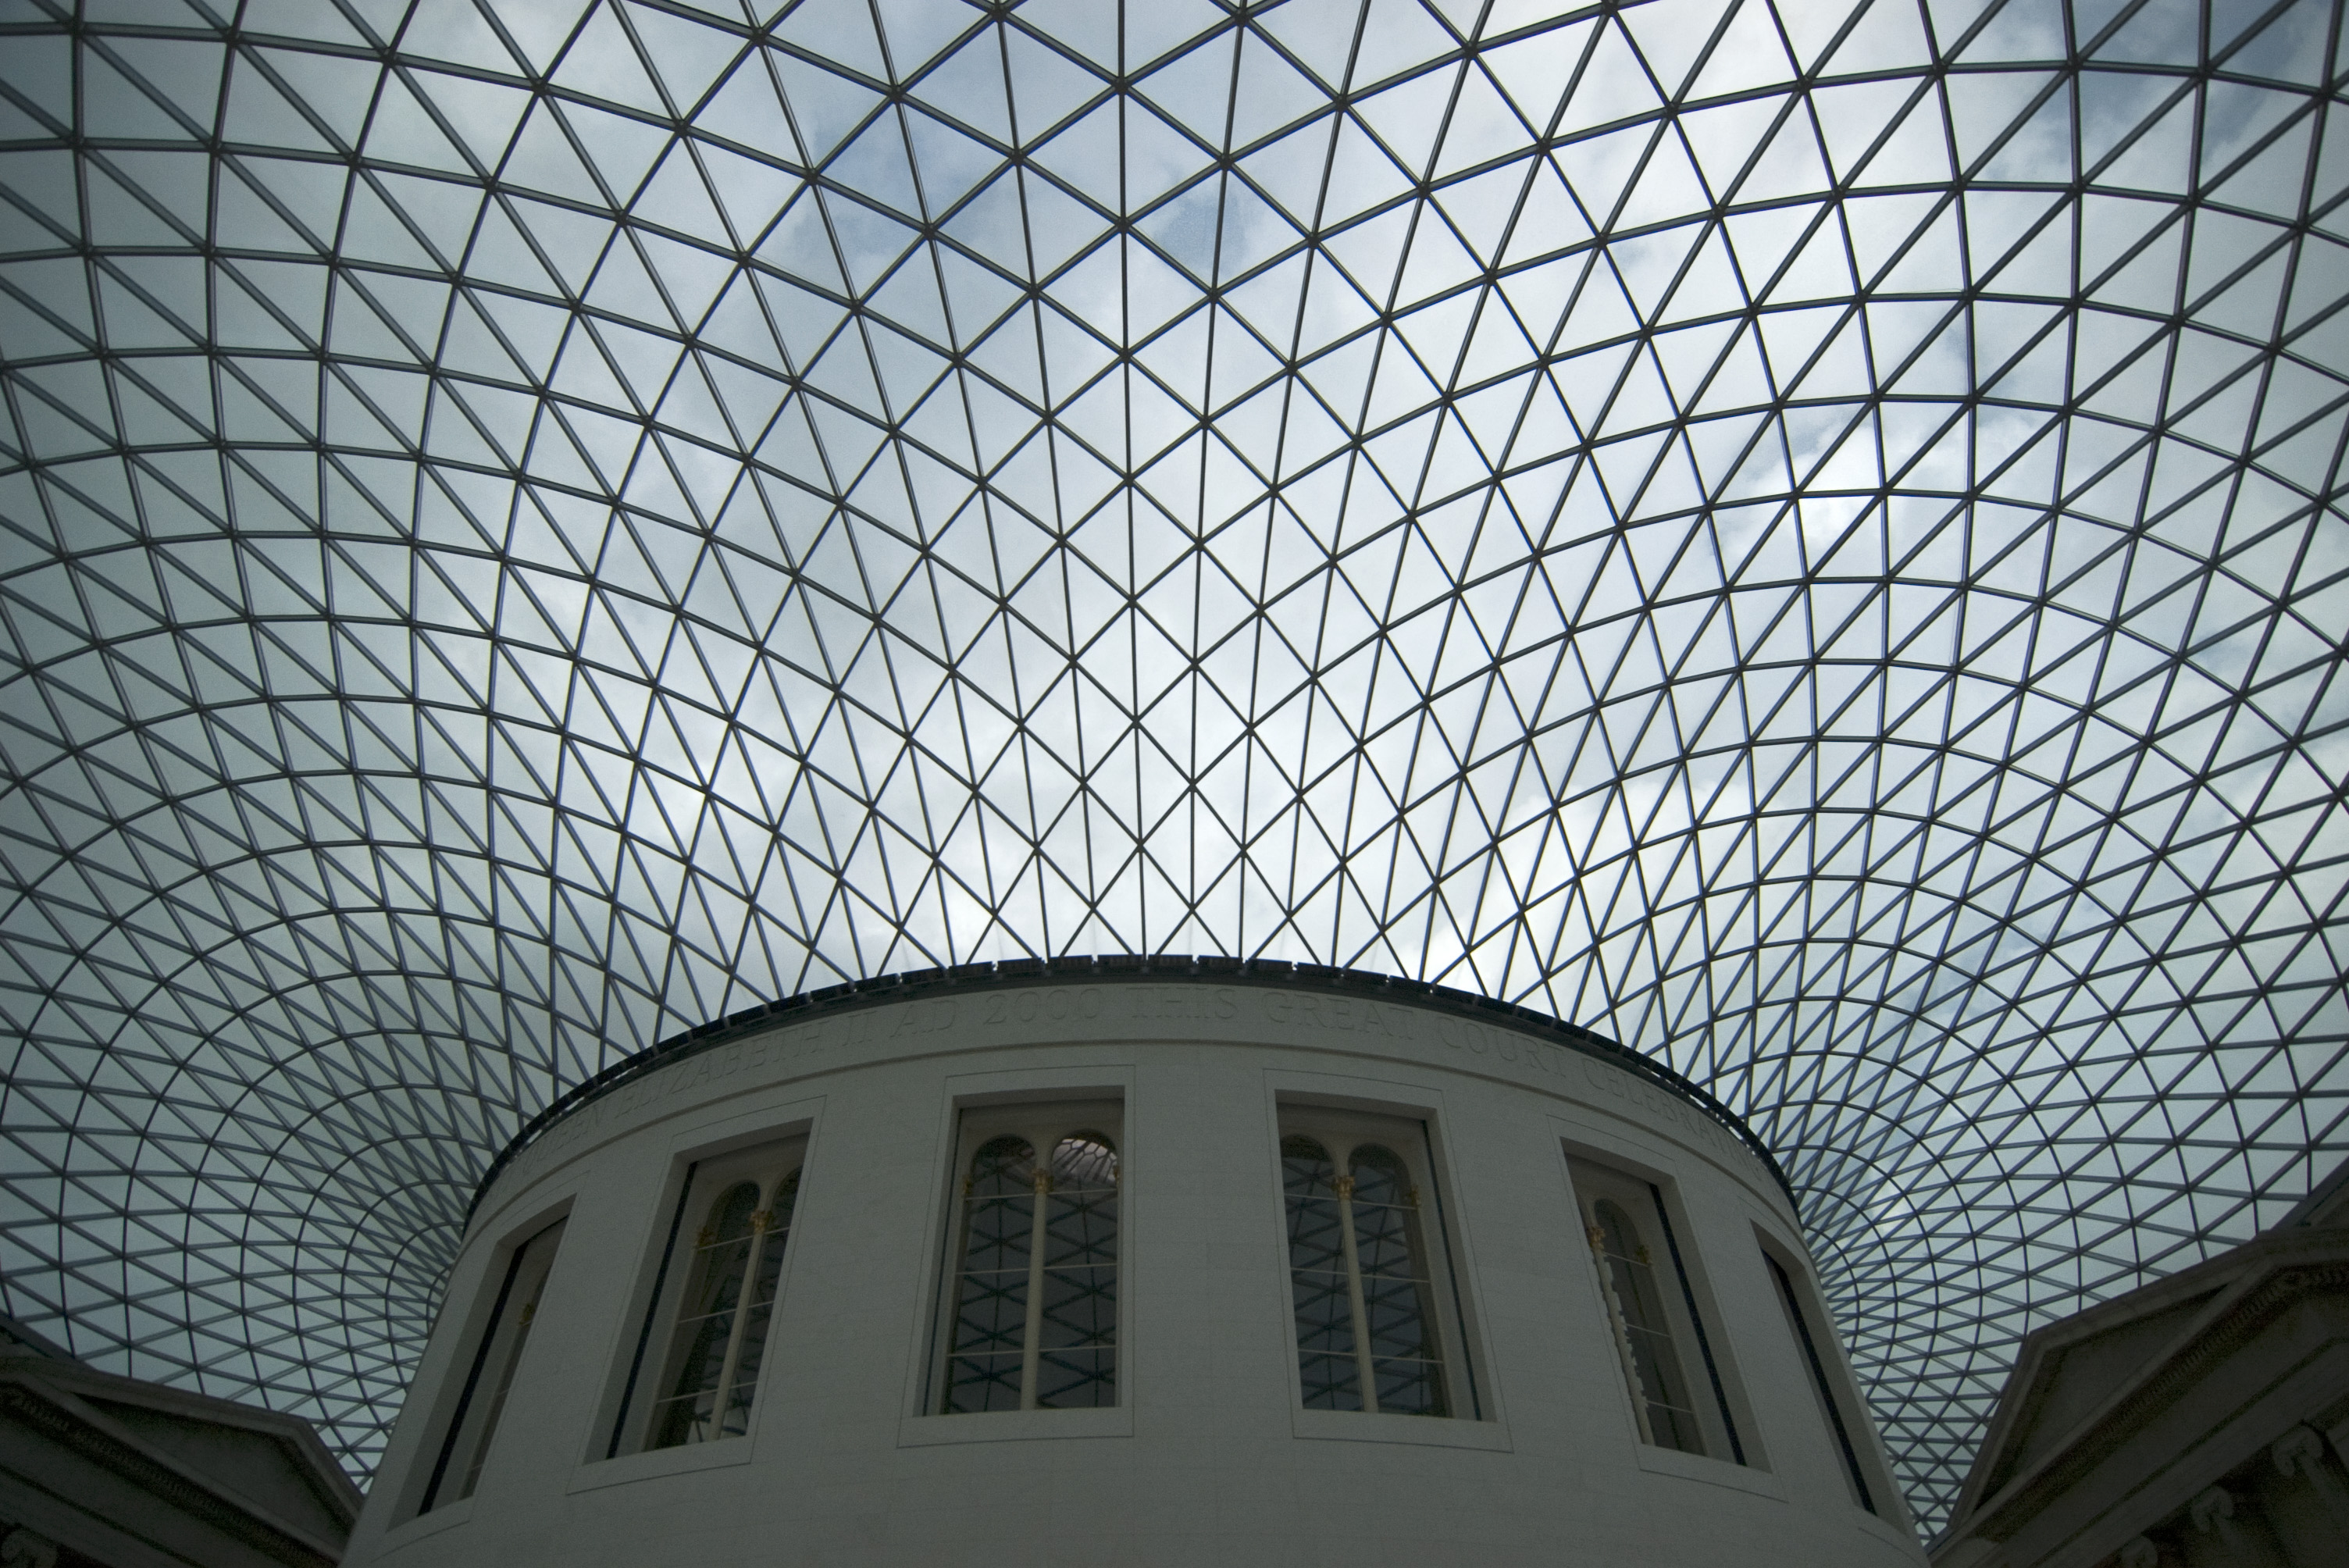 Free Stock Photo 2292 British Museum Library And Roof